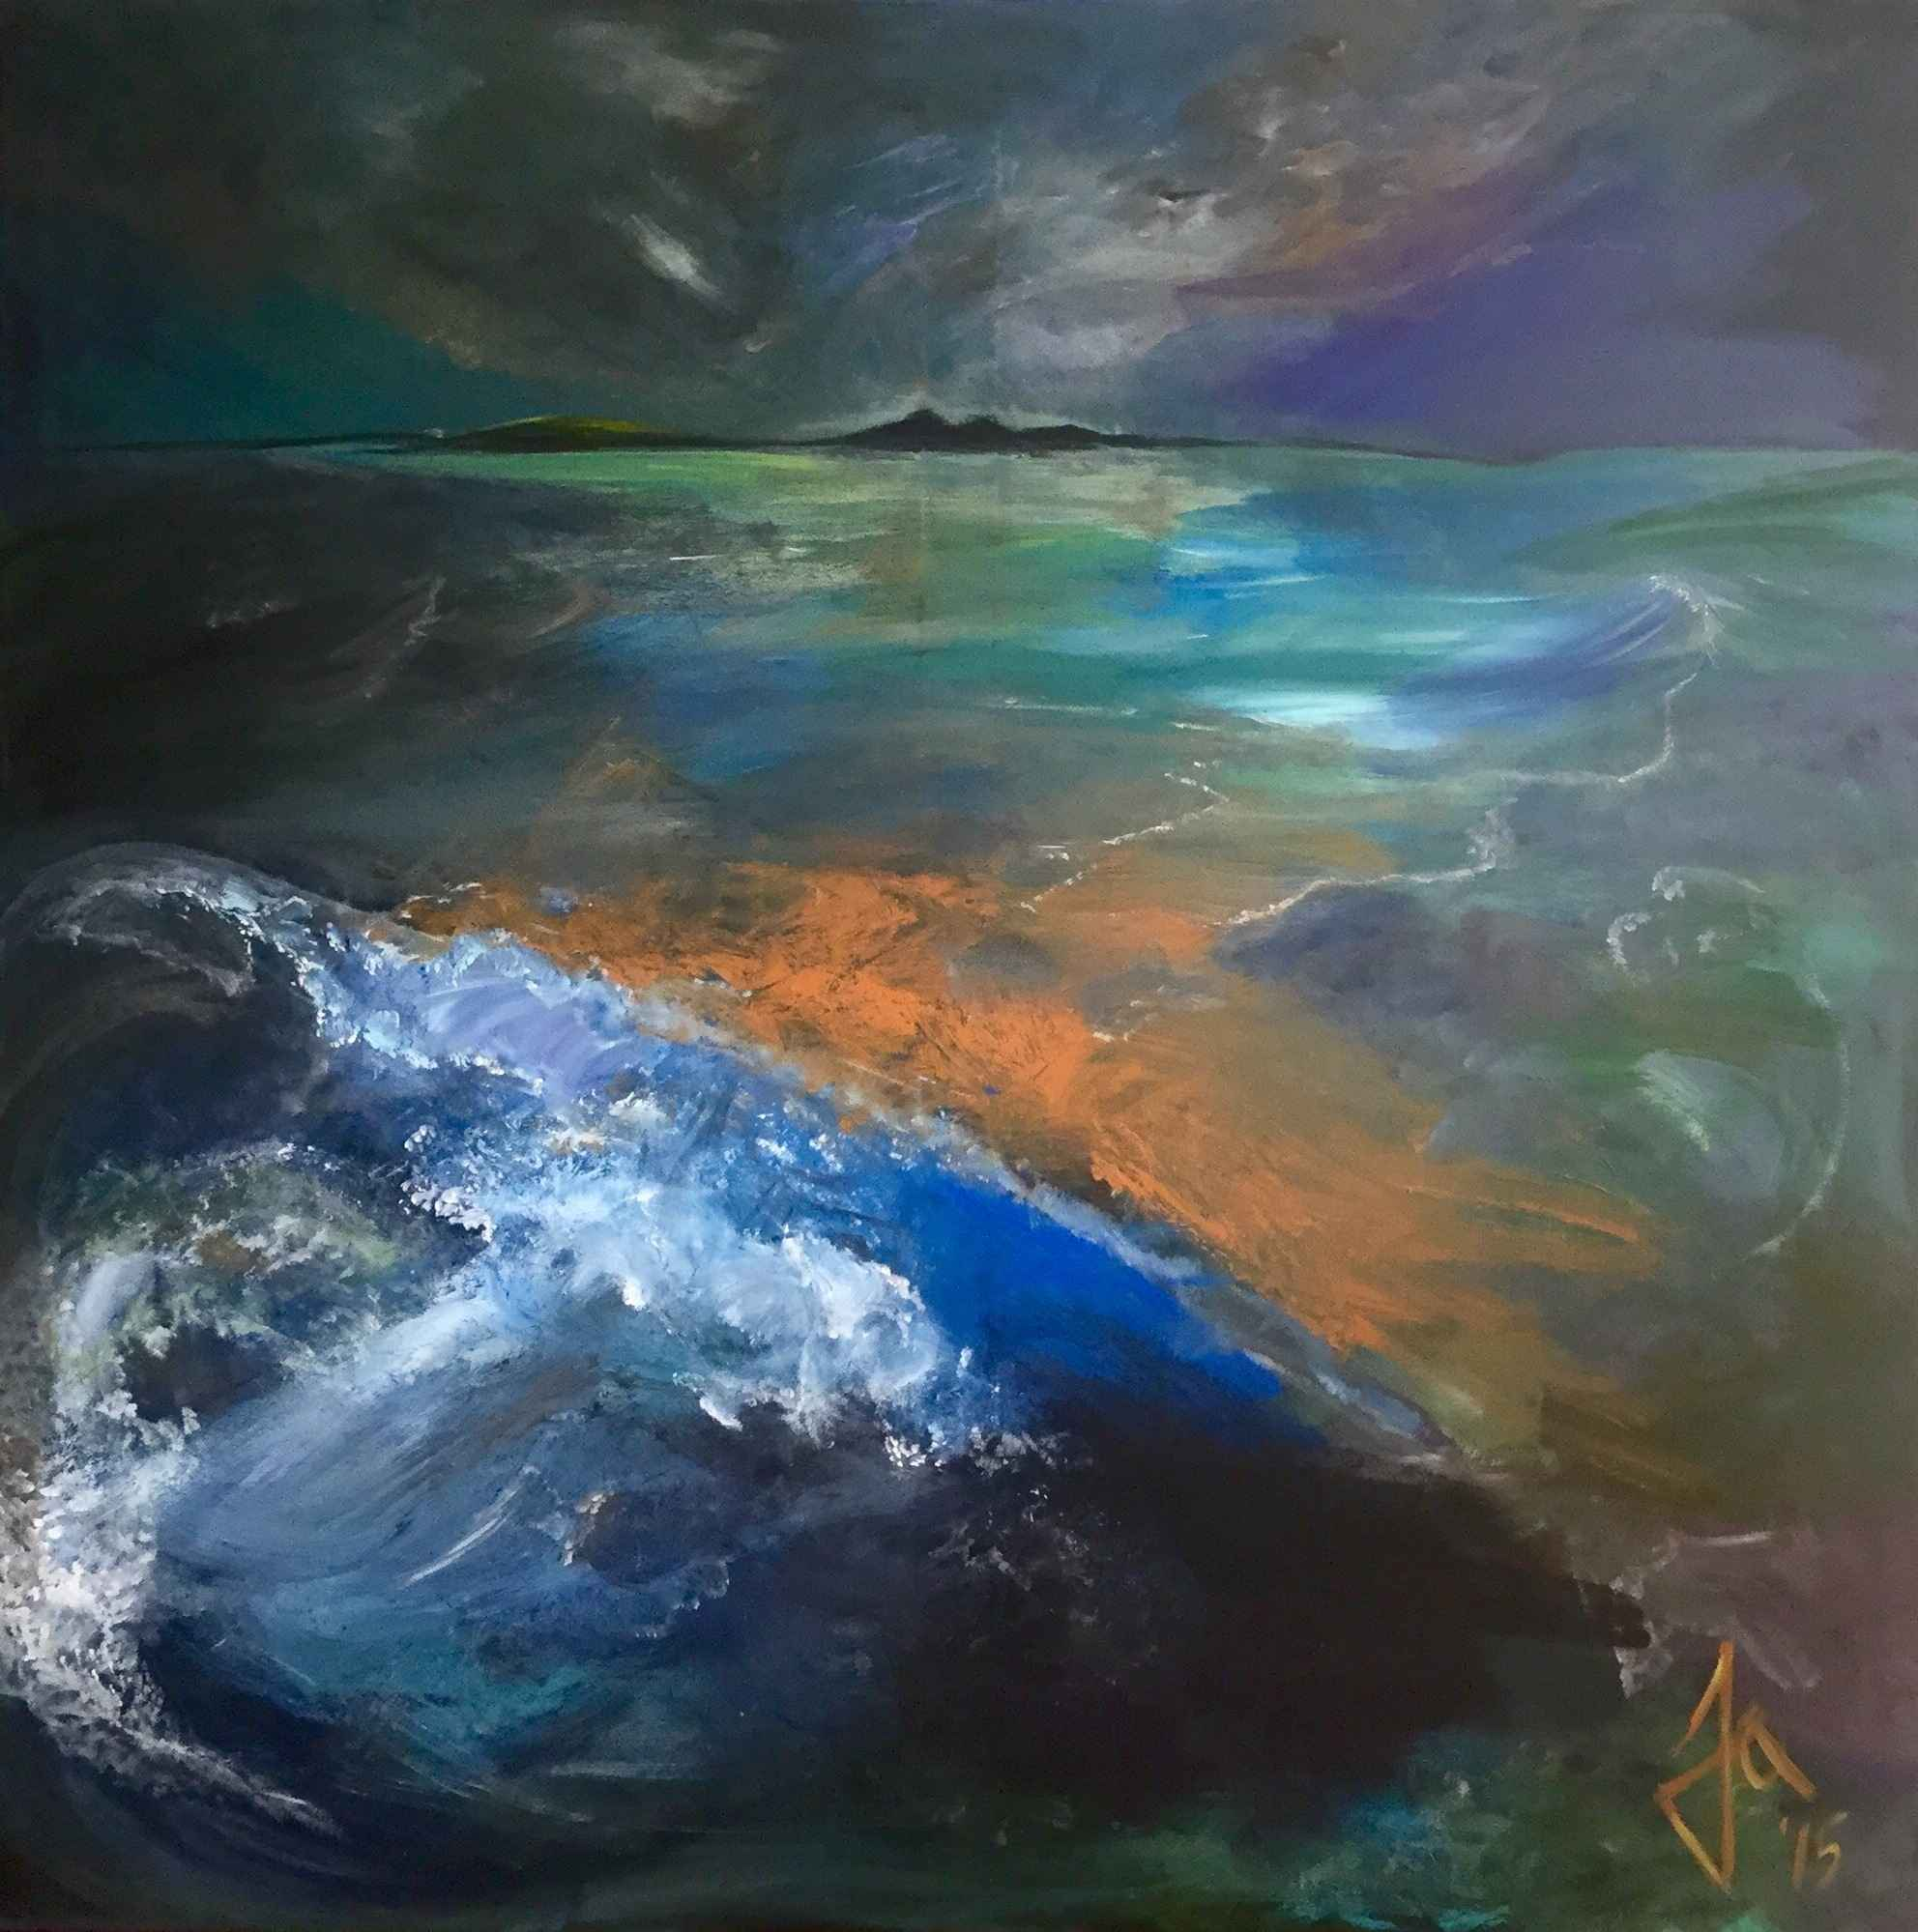 After the Storm by Mme Ioana JITARU - Masterpiece Online